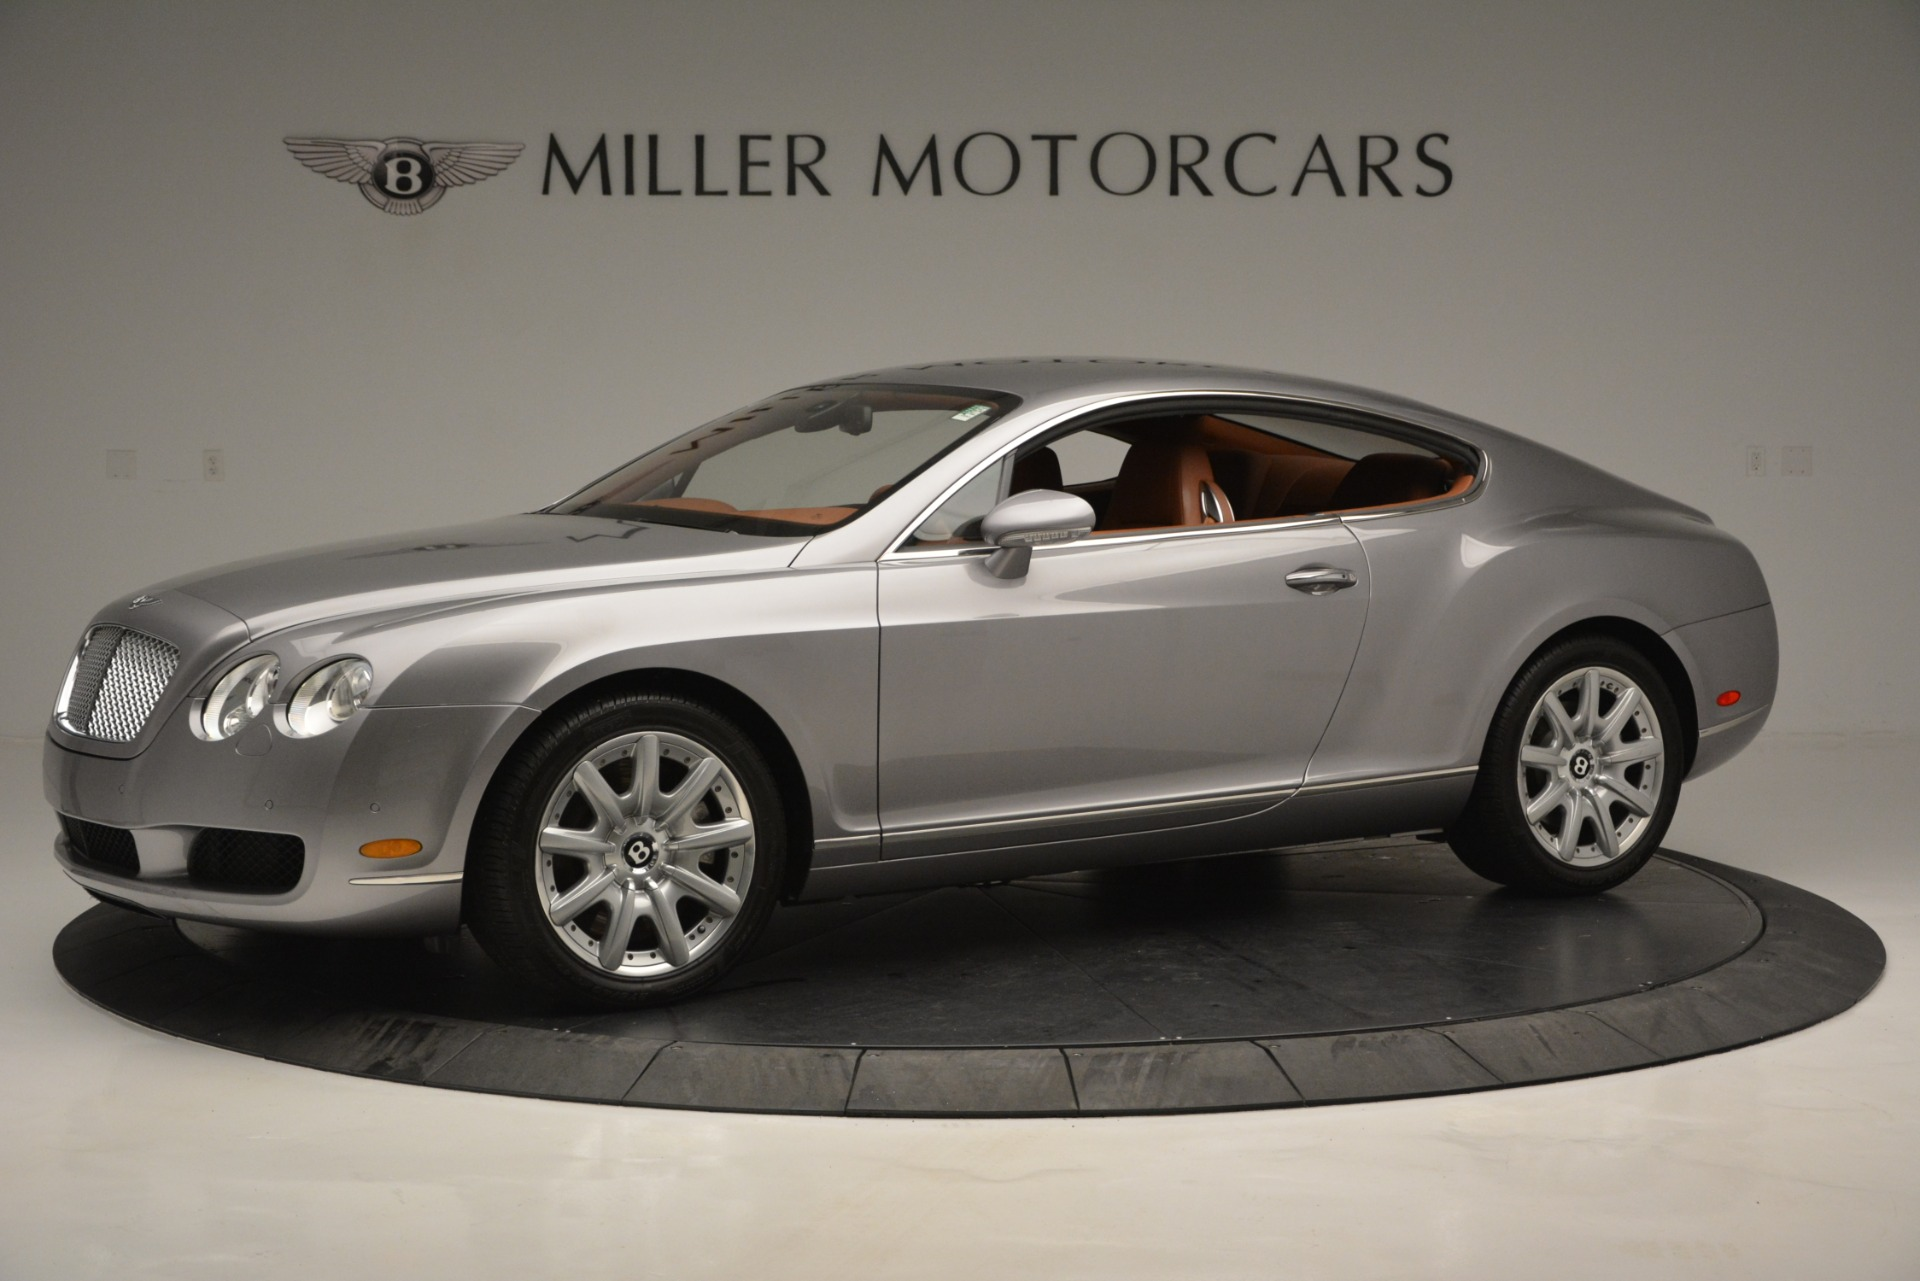 Used 2005 Bentley Continental GT GT Turbo For Sale In Westport, CT 2726_p2